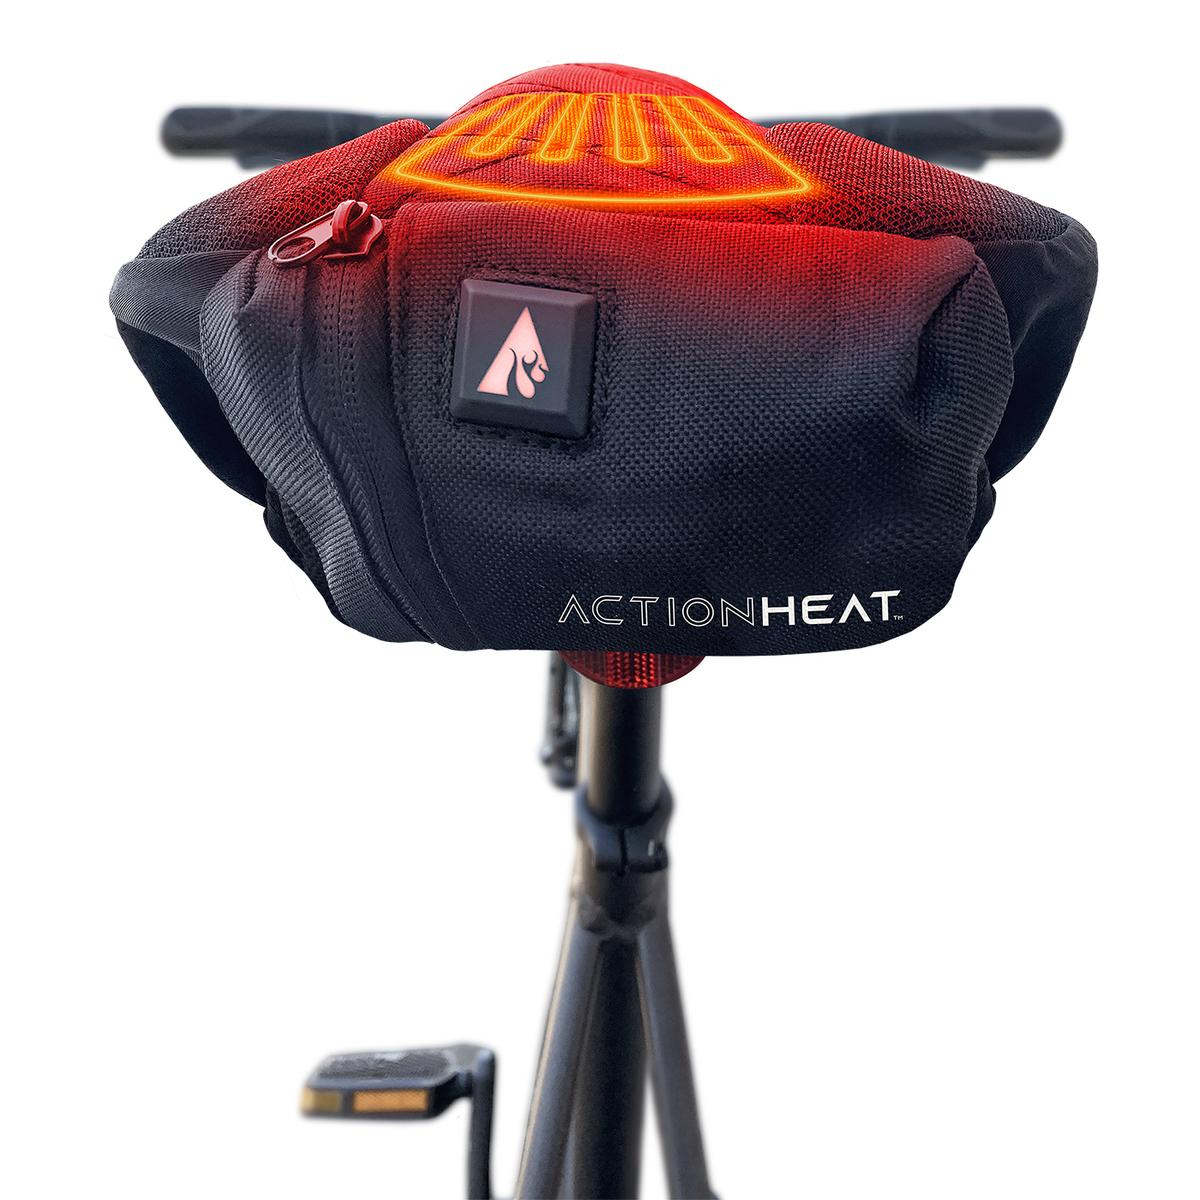 ActionHeat 5V Battery Heated Bicycle Seat - Size